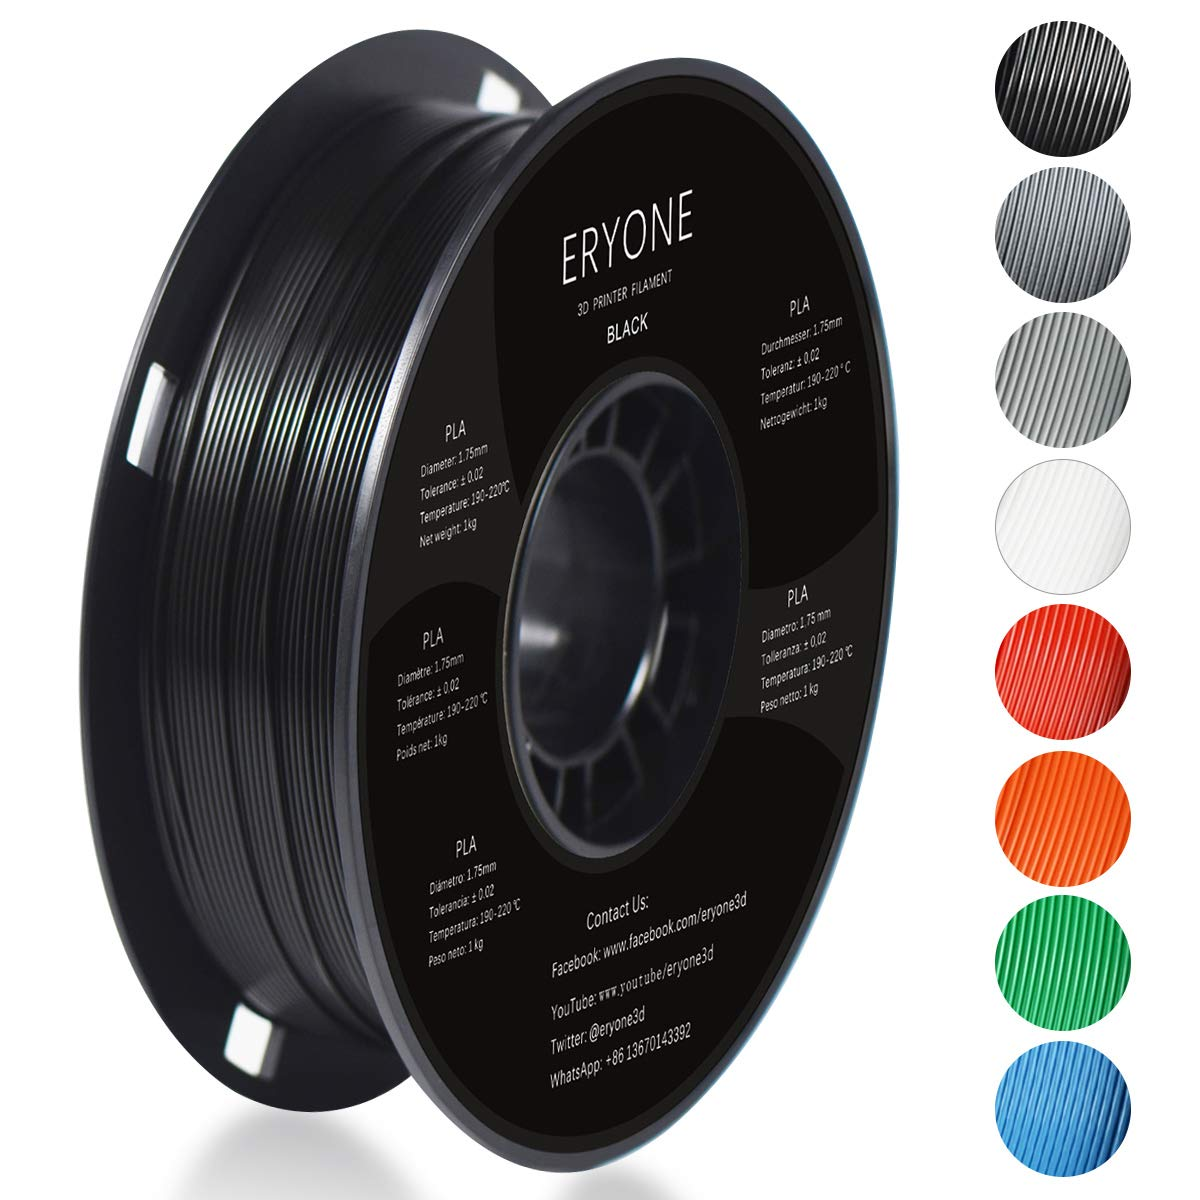 Filament PLA 1.75mm, Eryone PLA Filament 1.75mm, 3D Drucken Filament PLA for 3D Drucker, 1kg 1 Spool, Wei?